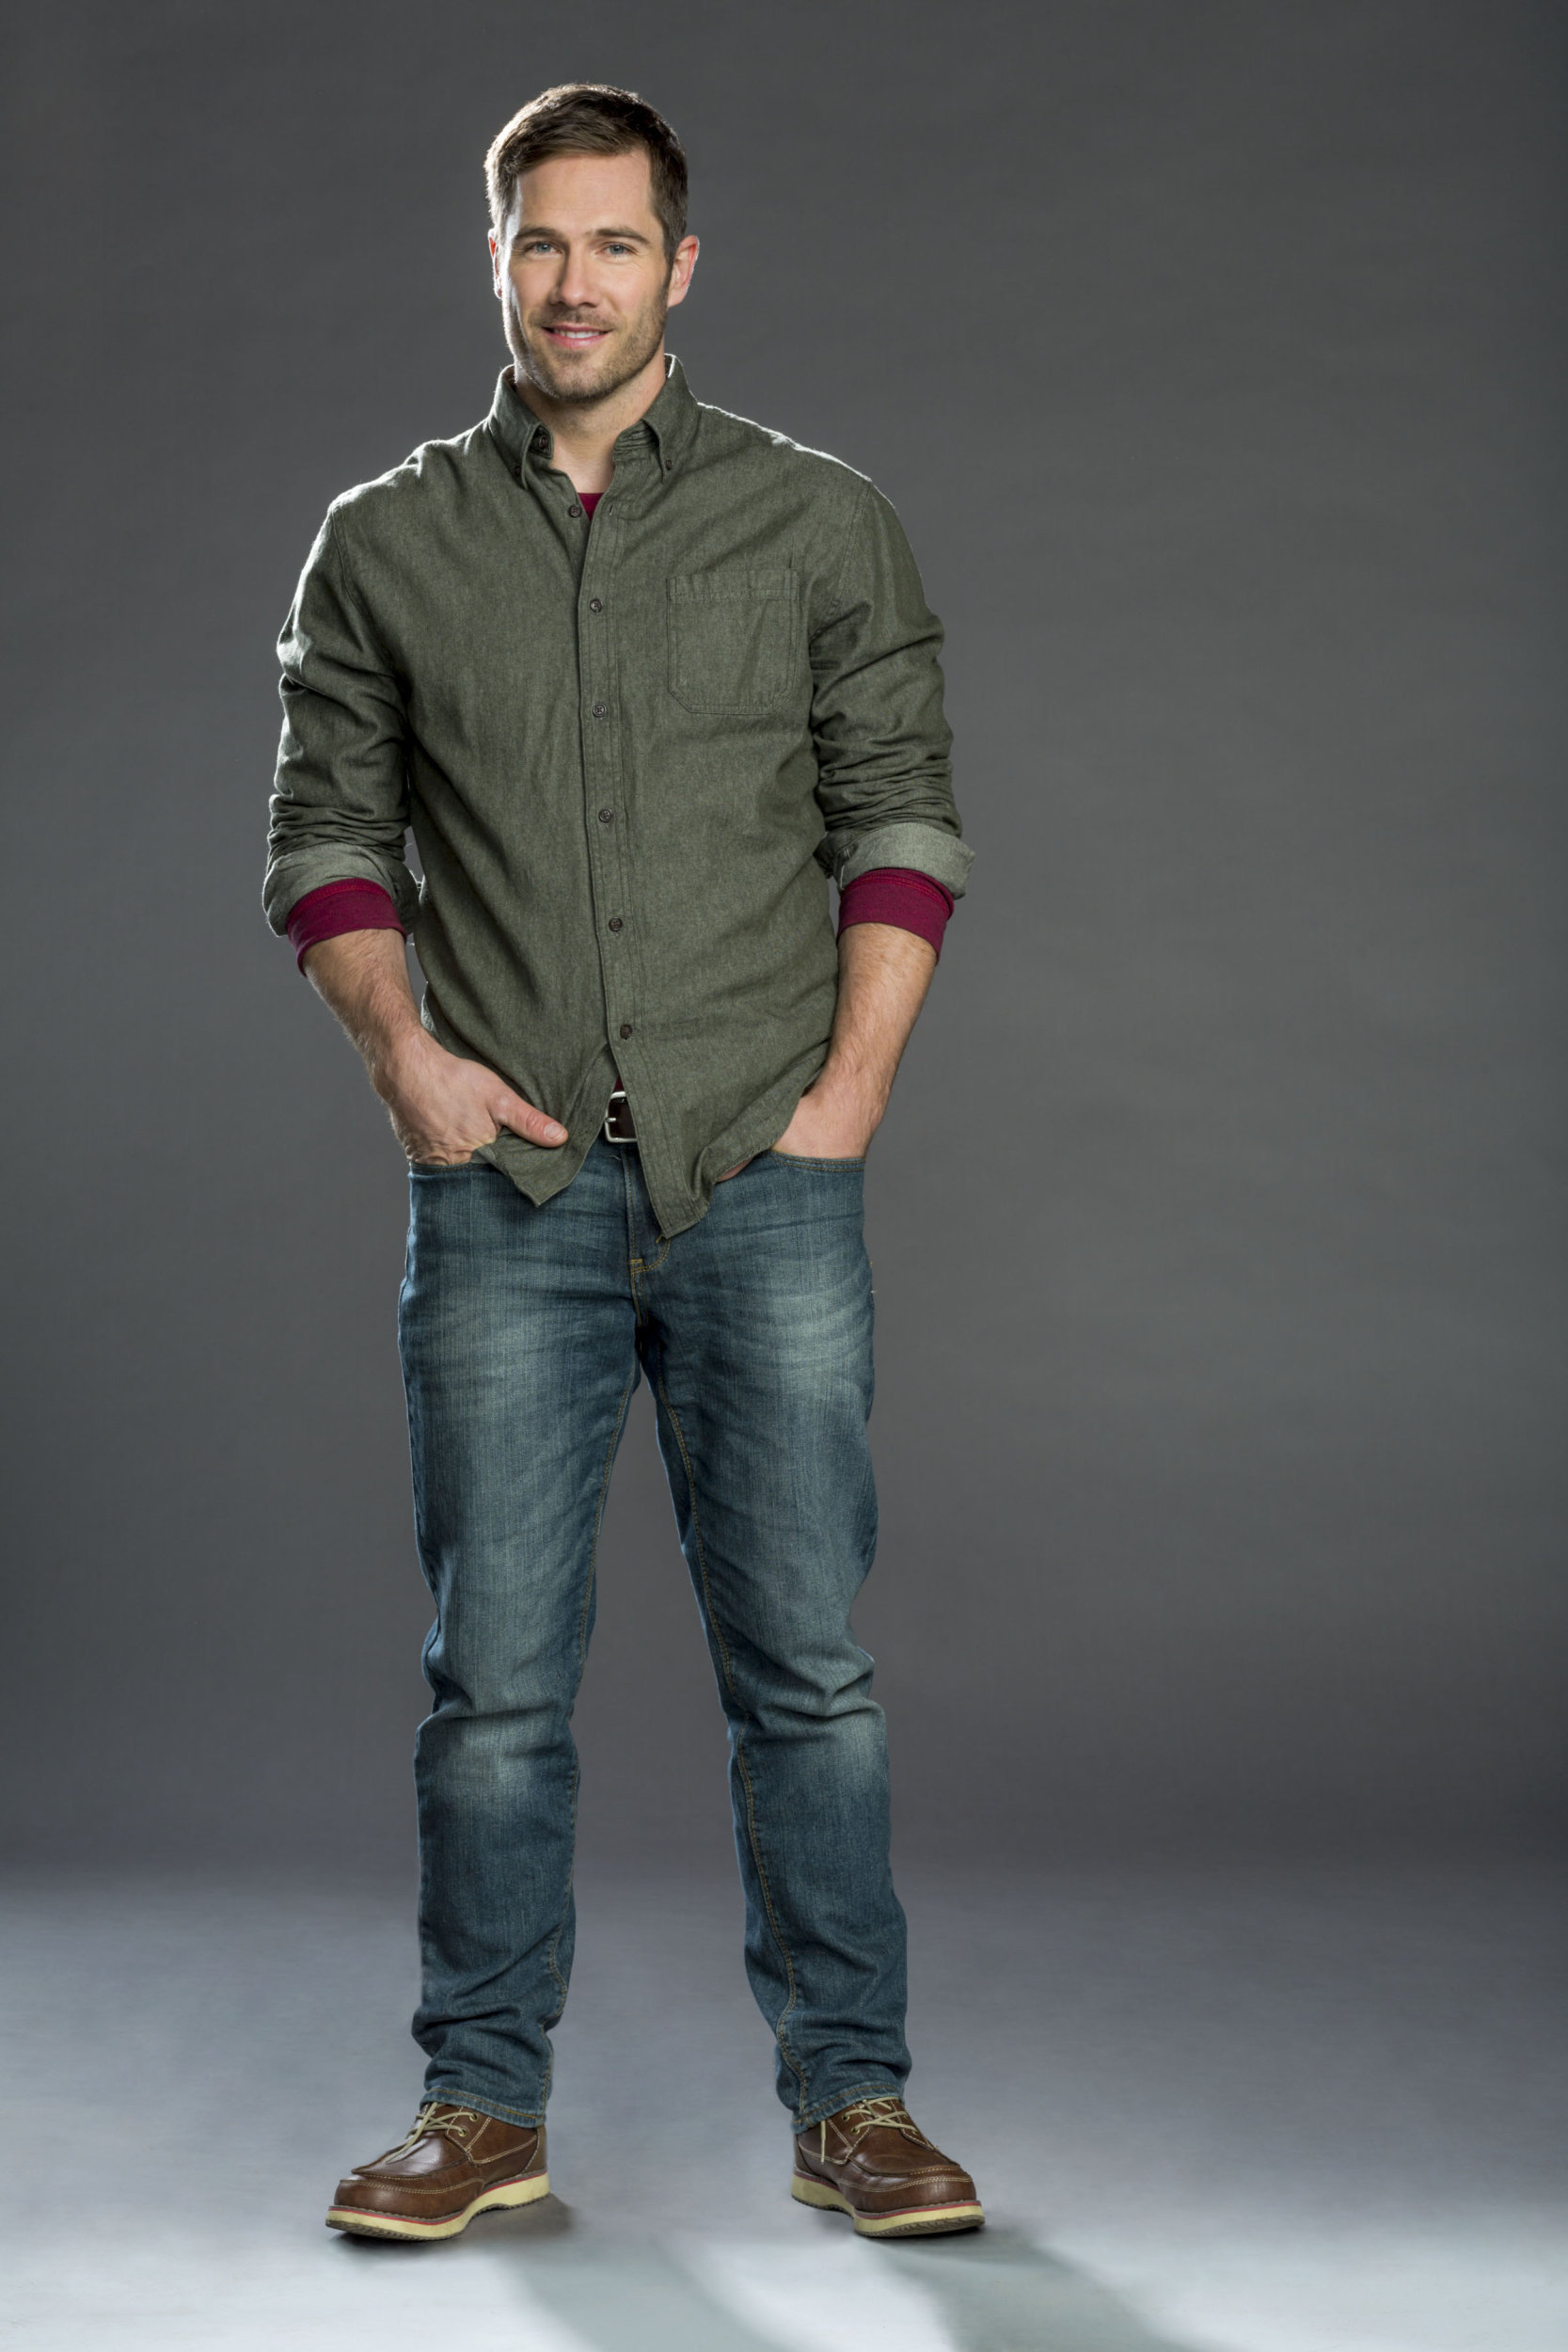 Luke Macfarlane as Tucker Martin on Christmas Land | Hallmark Channel